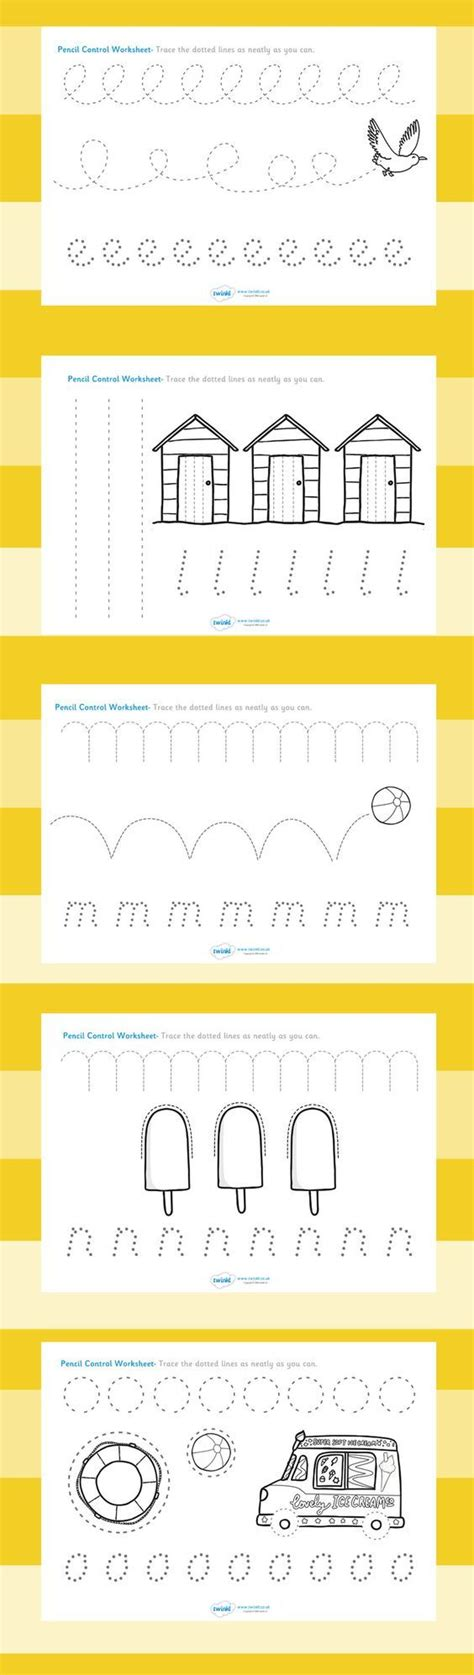 handwriting worksheets  images